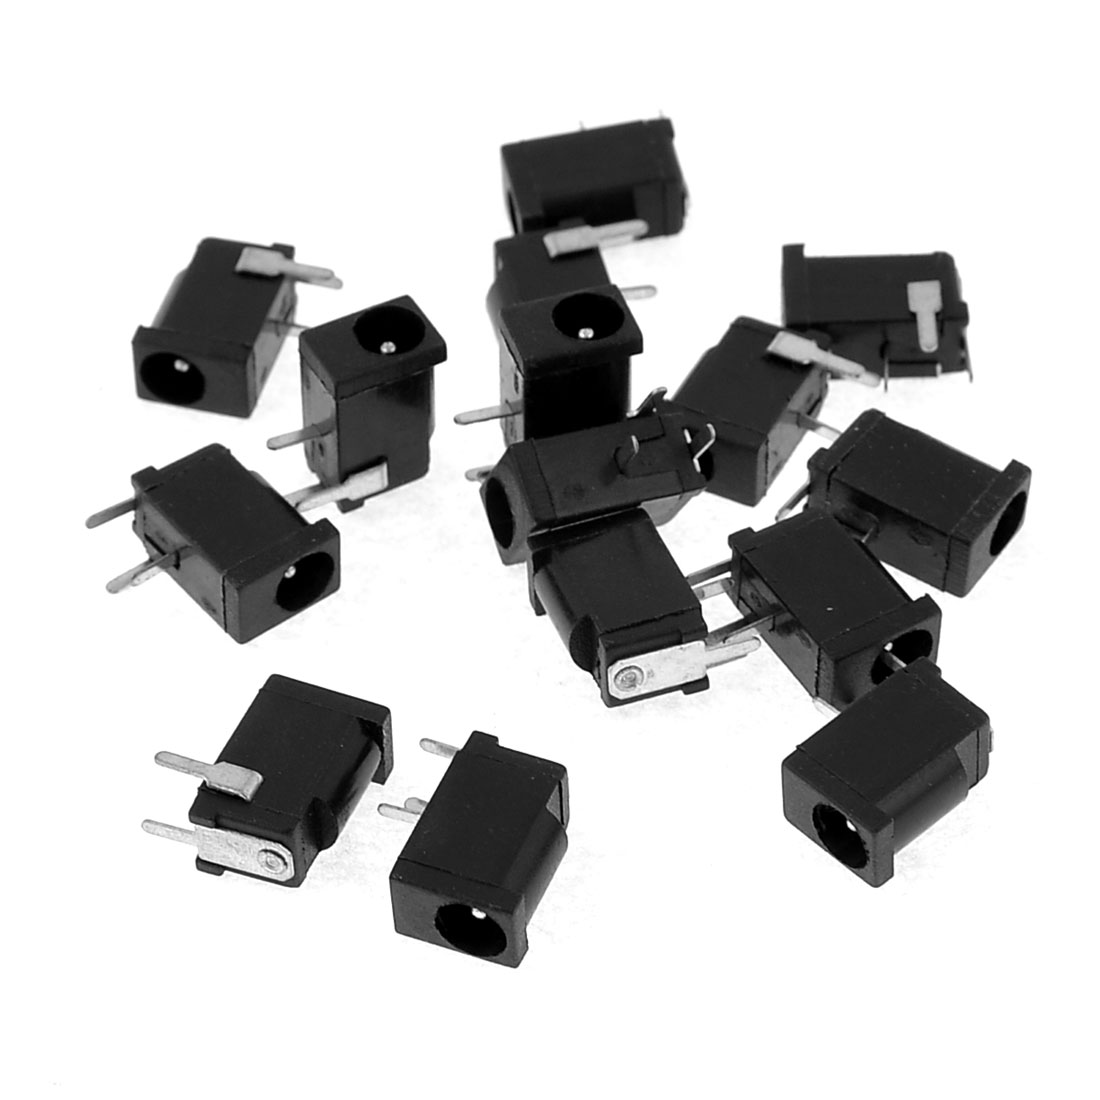 15 Pcs Replacement Part 3.5 x 1.3mm DC Jack Joint Power Socket